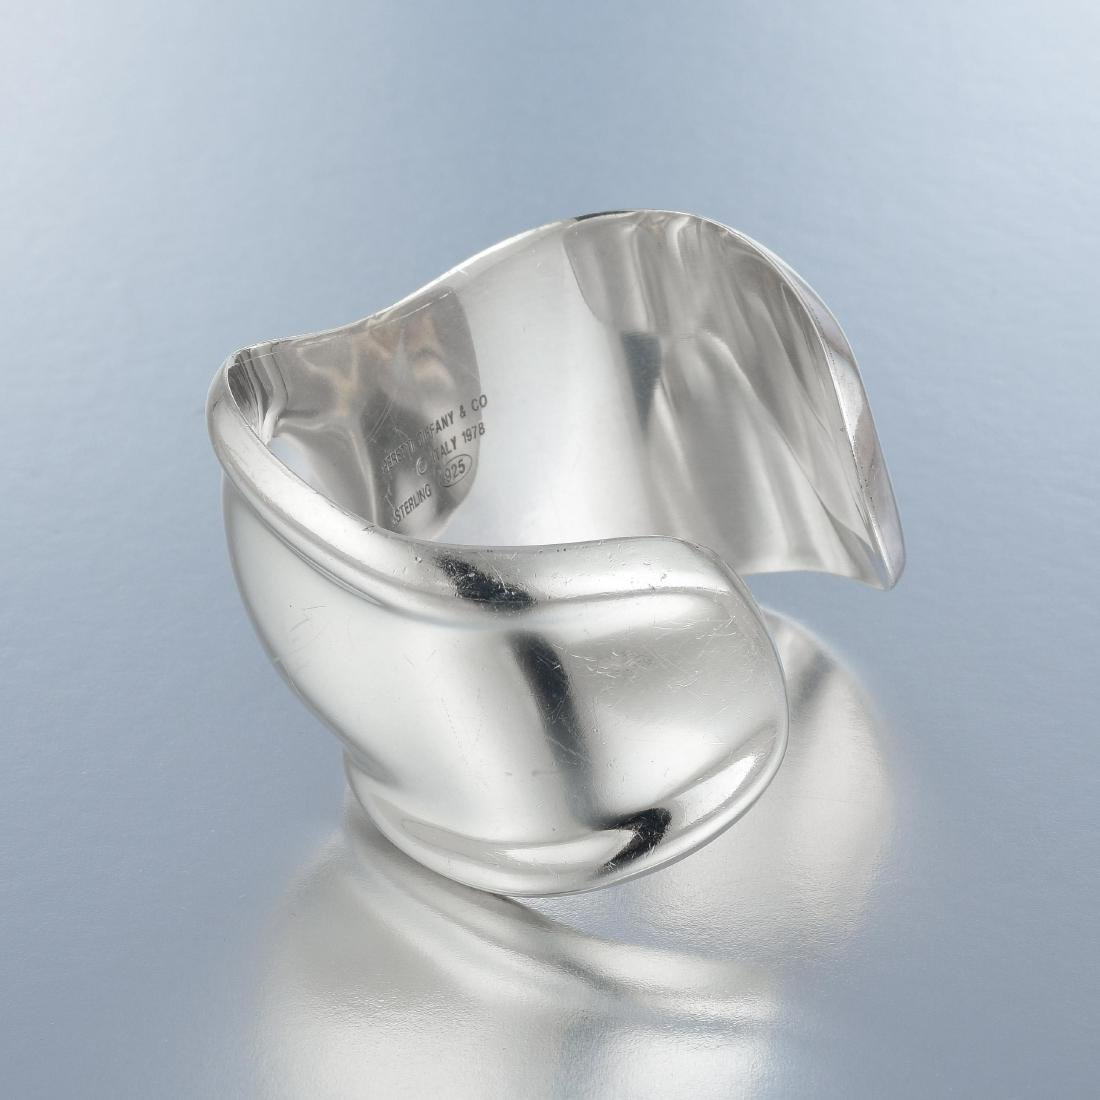 Tiffany & Co. Elsa Peretti Silver Bone Cuff - 2